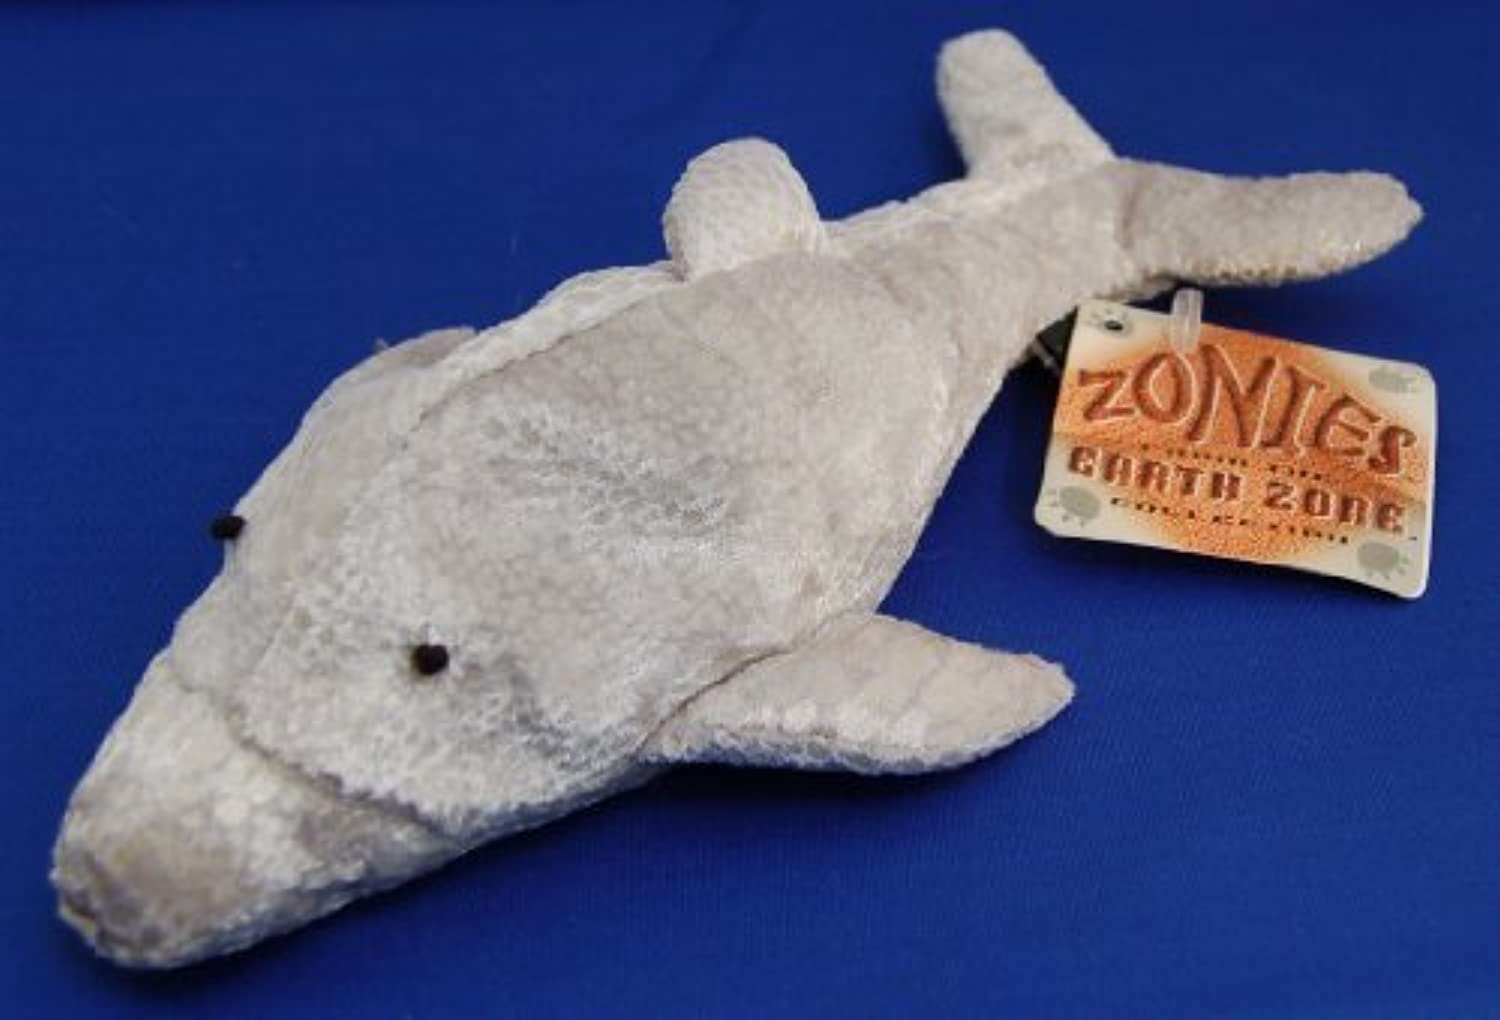 Zonies Earth Zone Collection by Russ - Doobee The Dolphin : Item 1349 [並行輸入品]